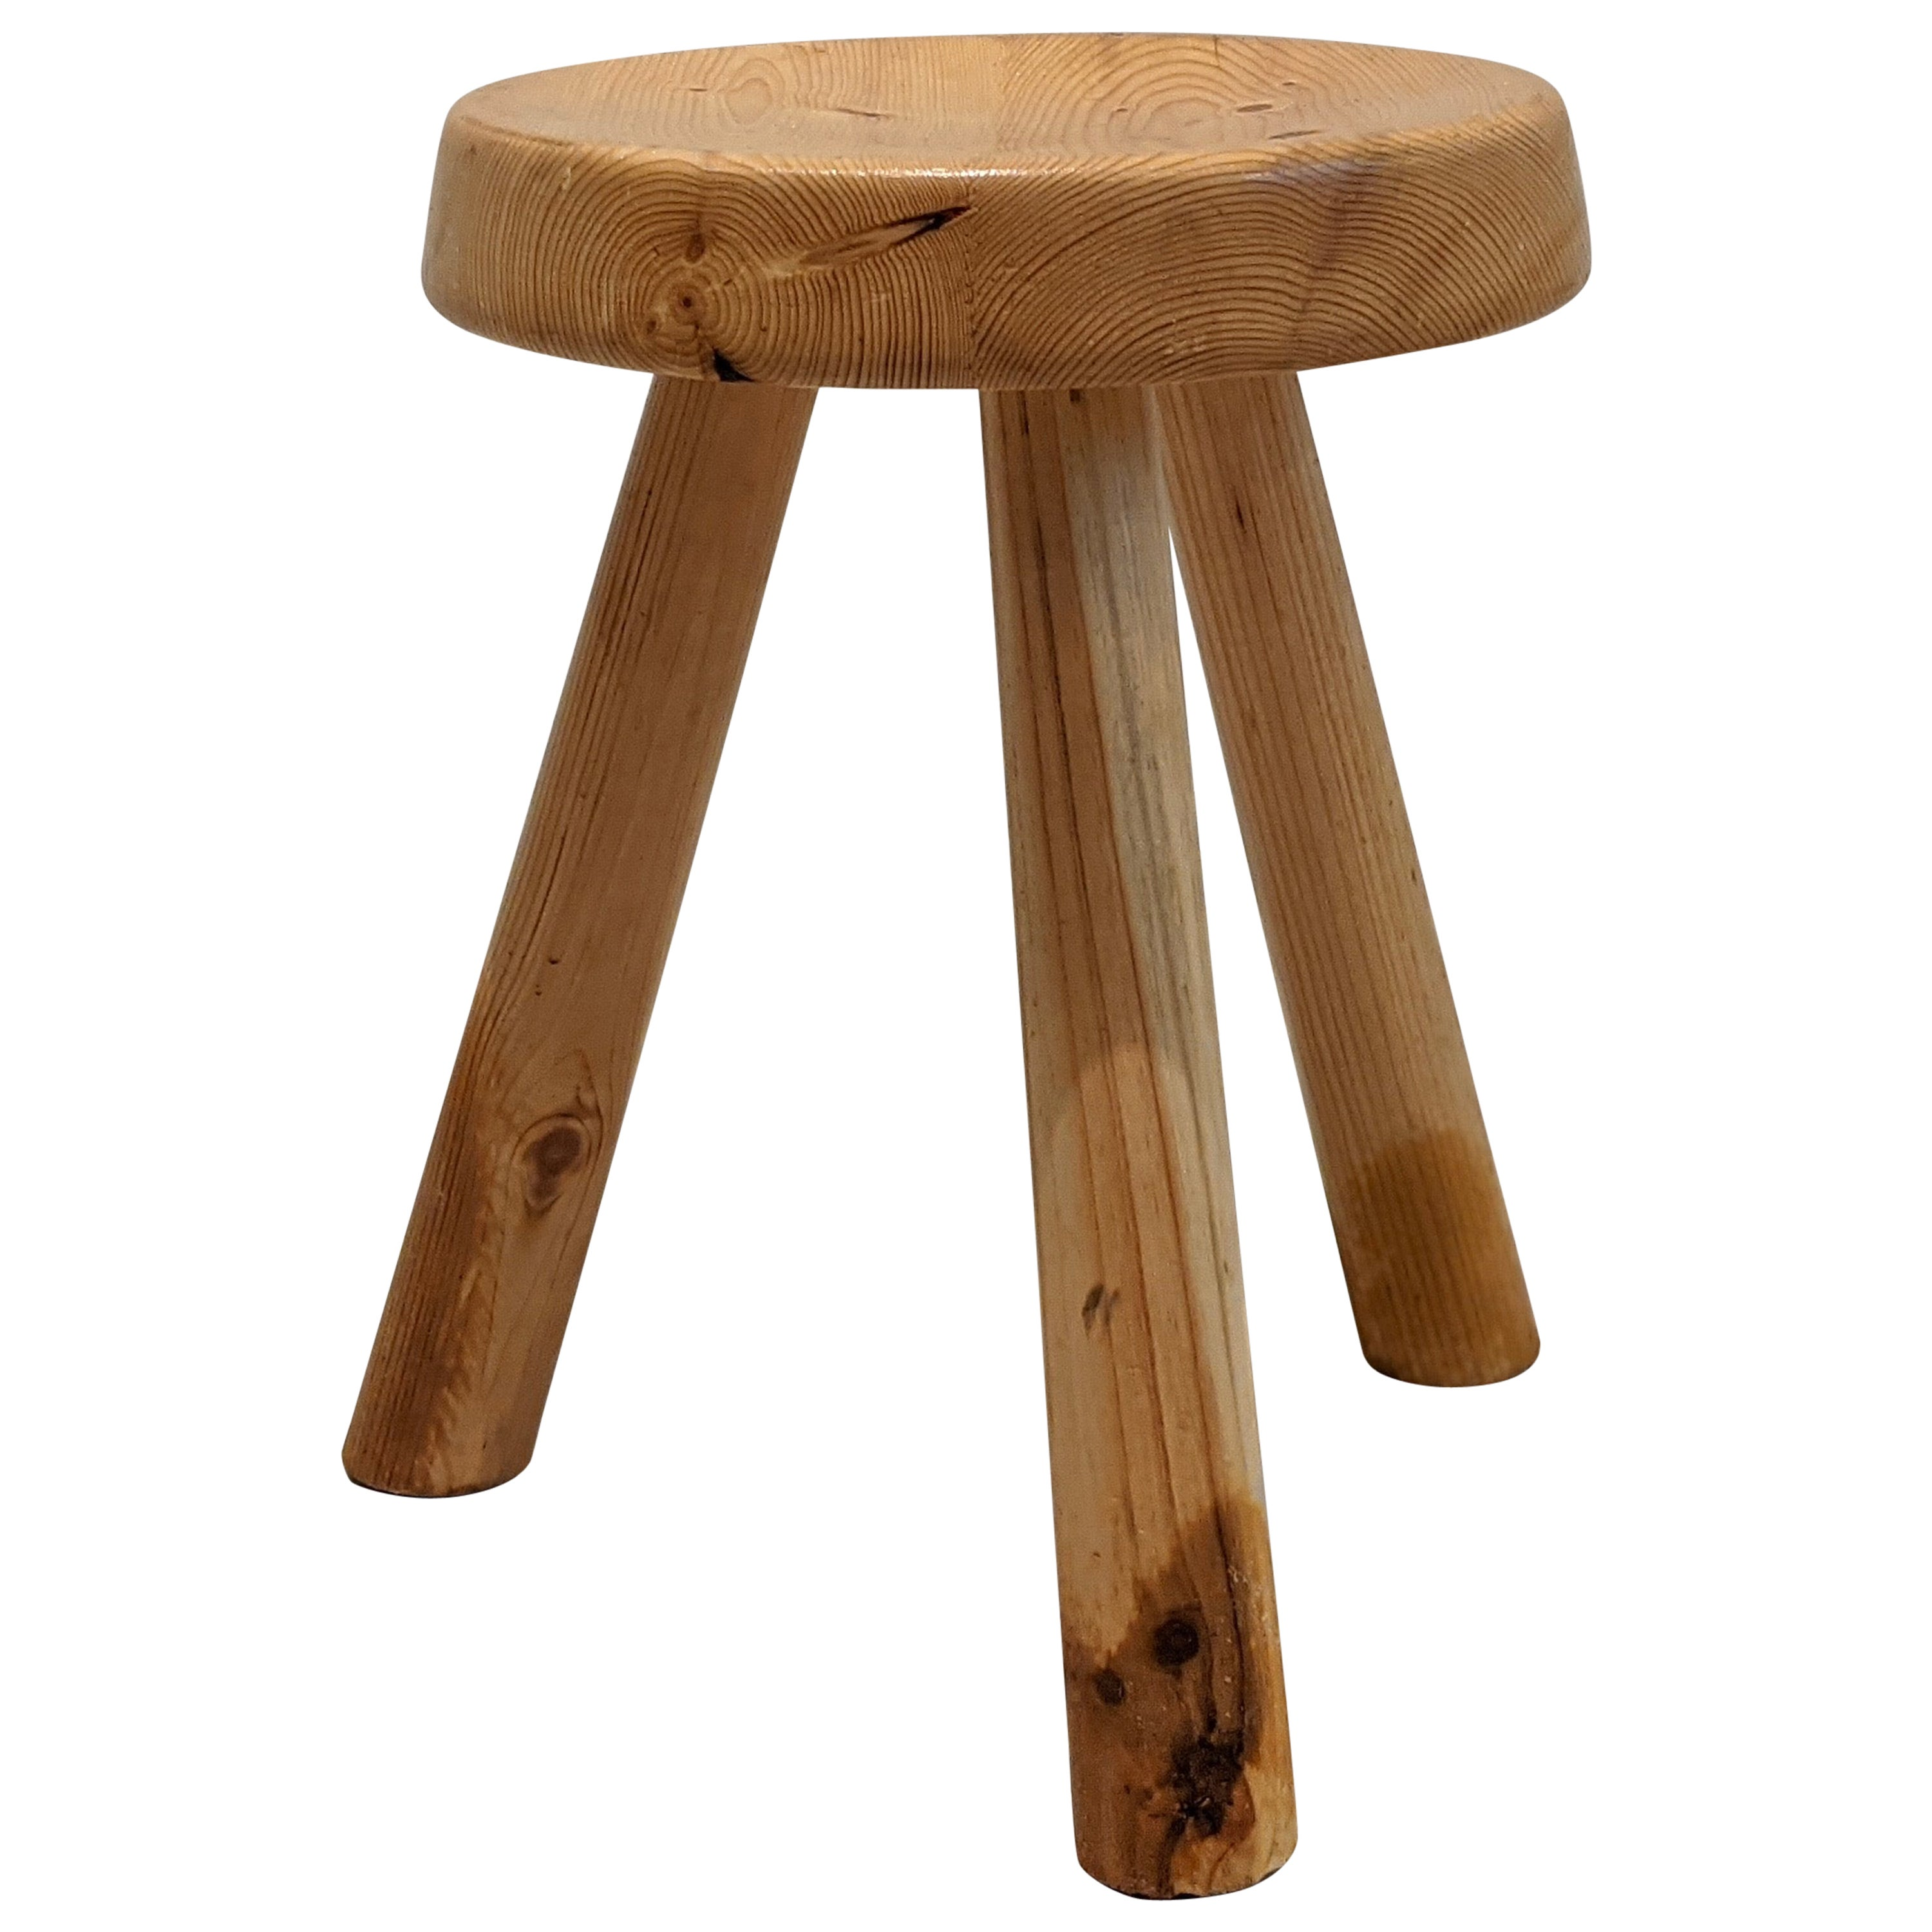 Stool by Charlotte Perriand for Les Arcs